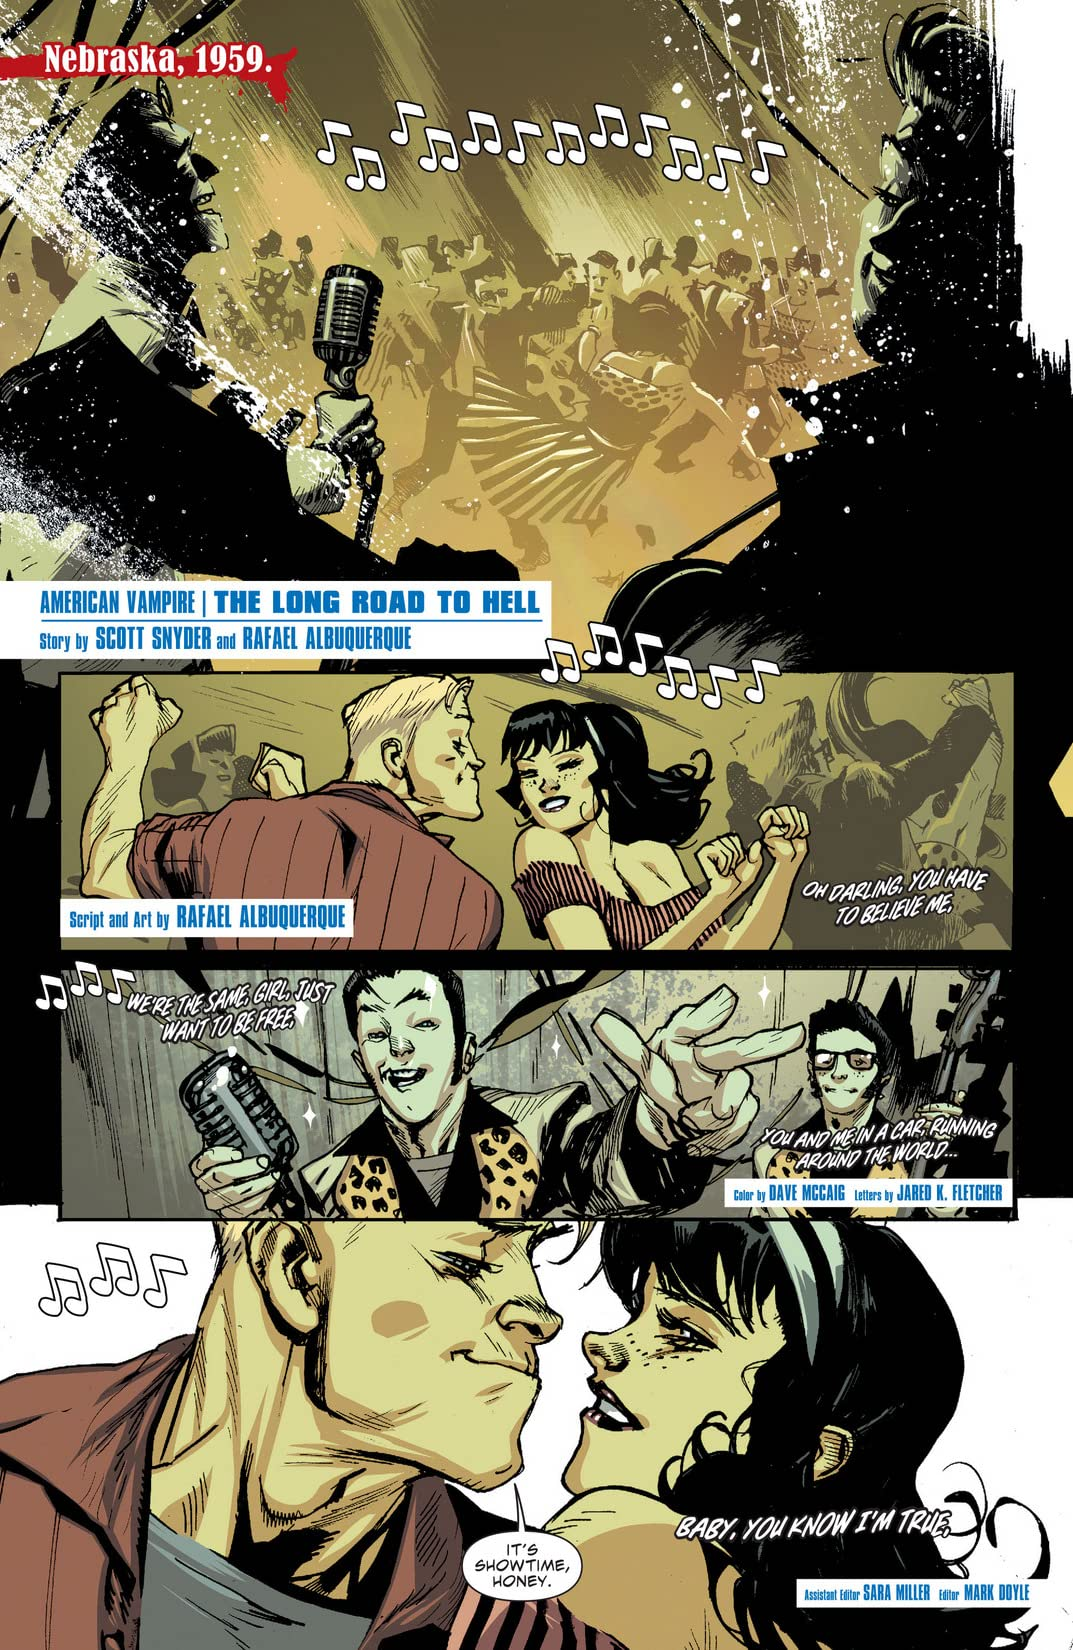 American Vampire: The Long Road To Hell #1